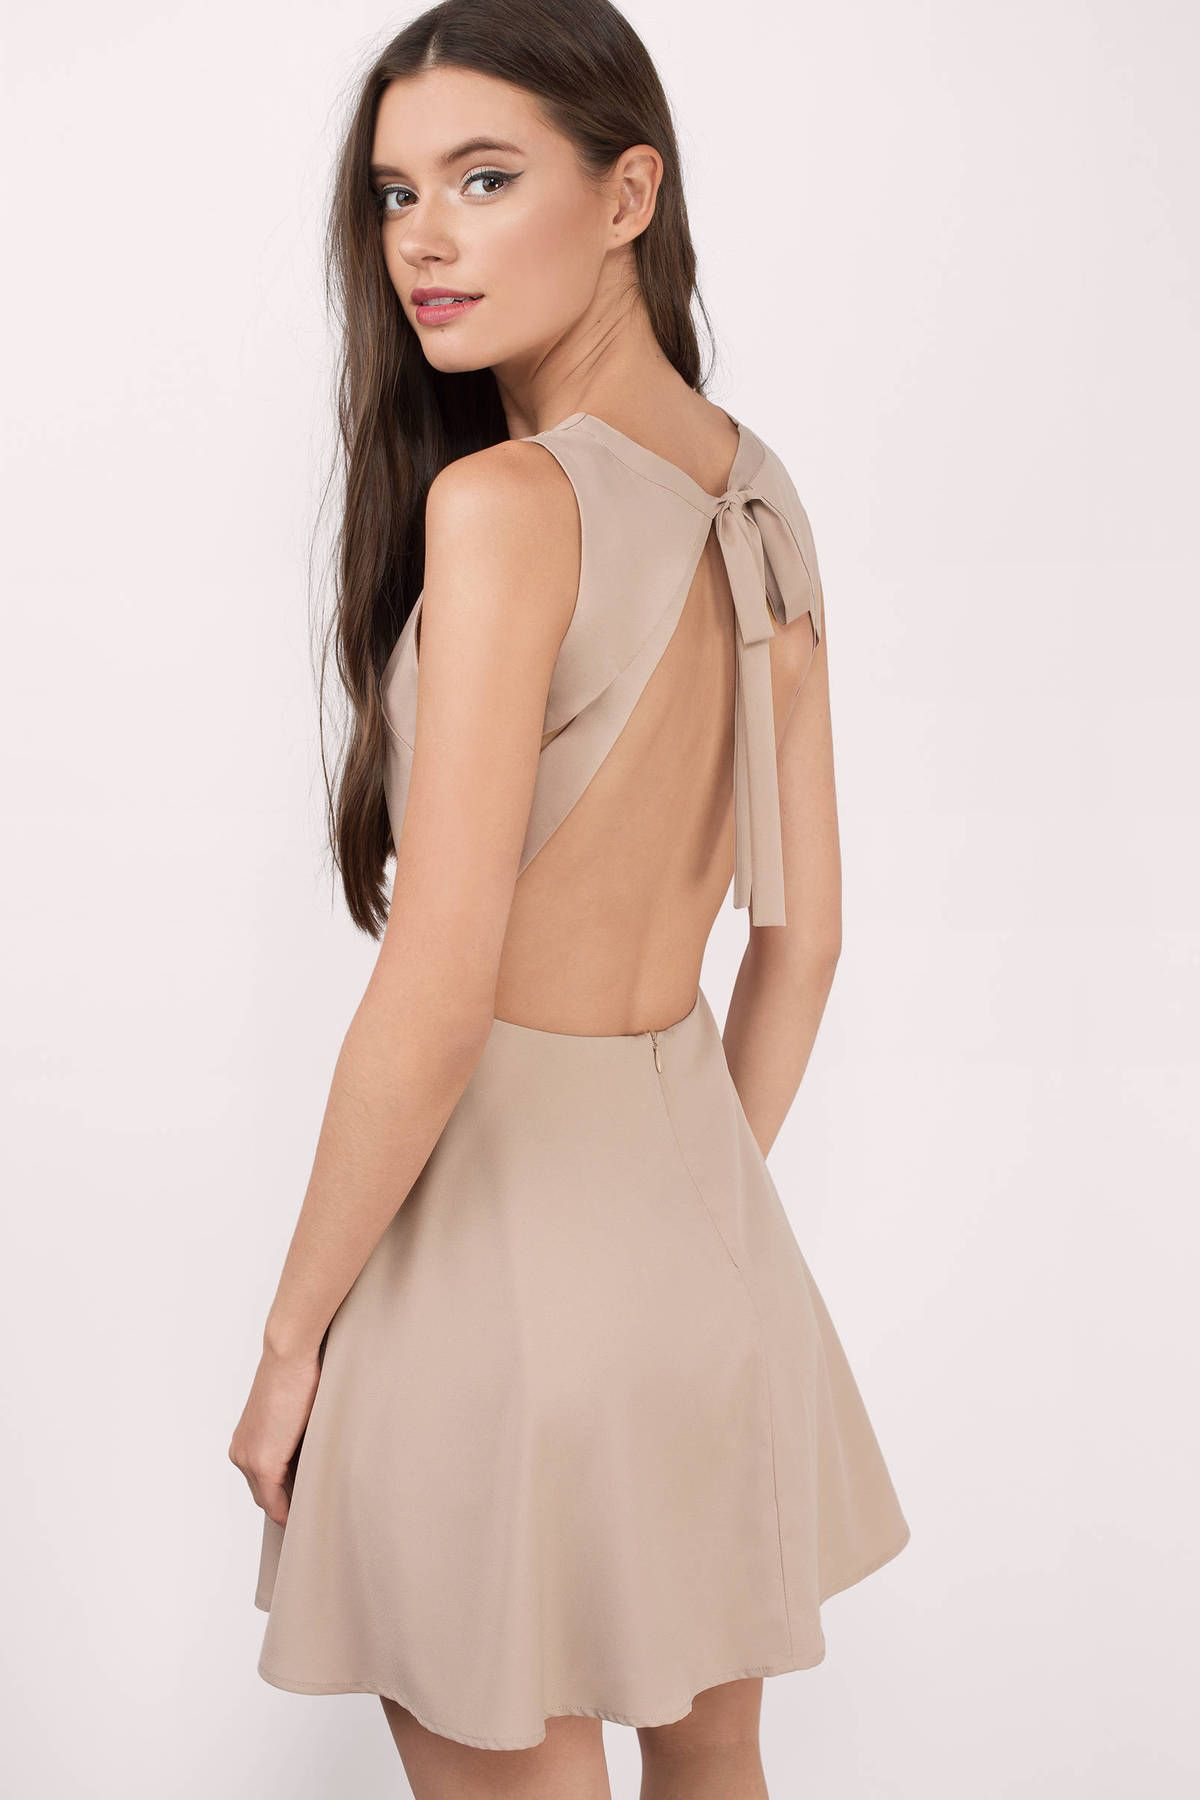 0220f26193 Andie Open Back Skater Dress at Tobi.com  shoptobi